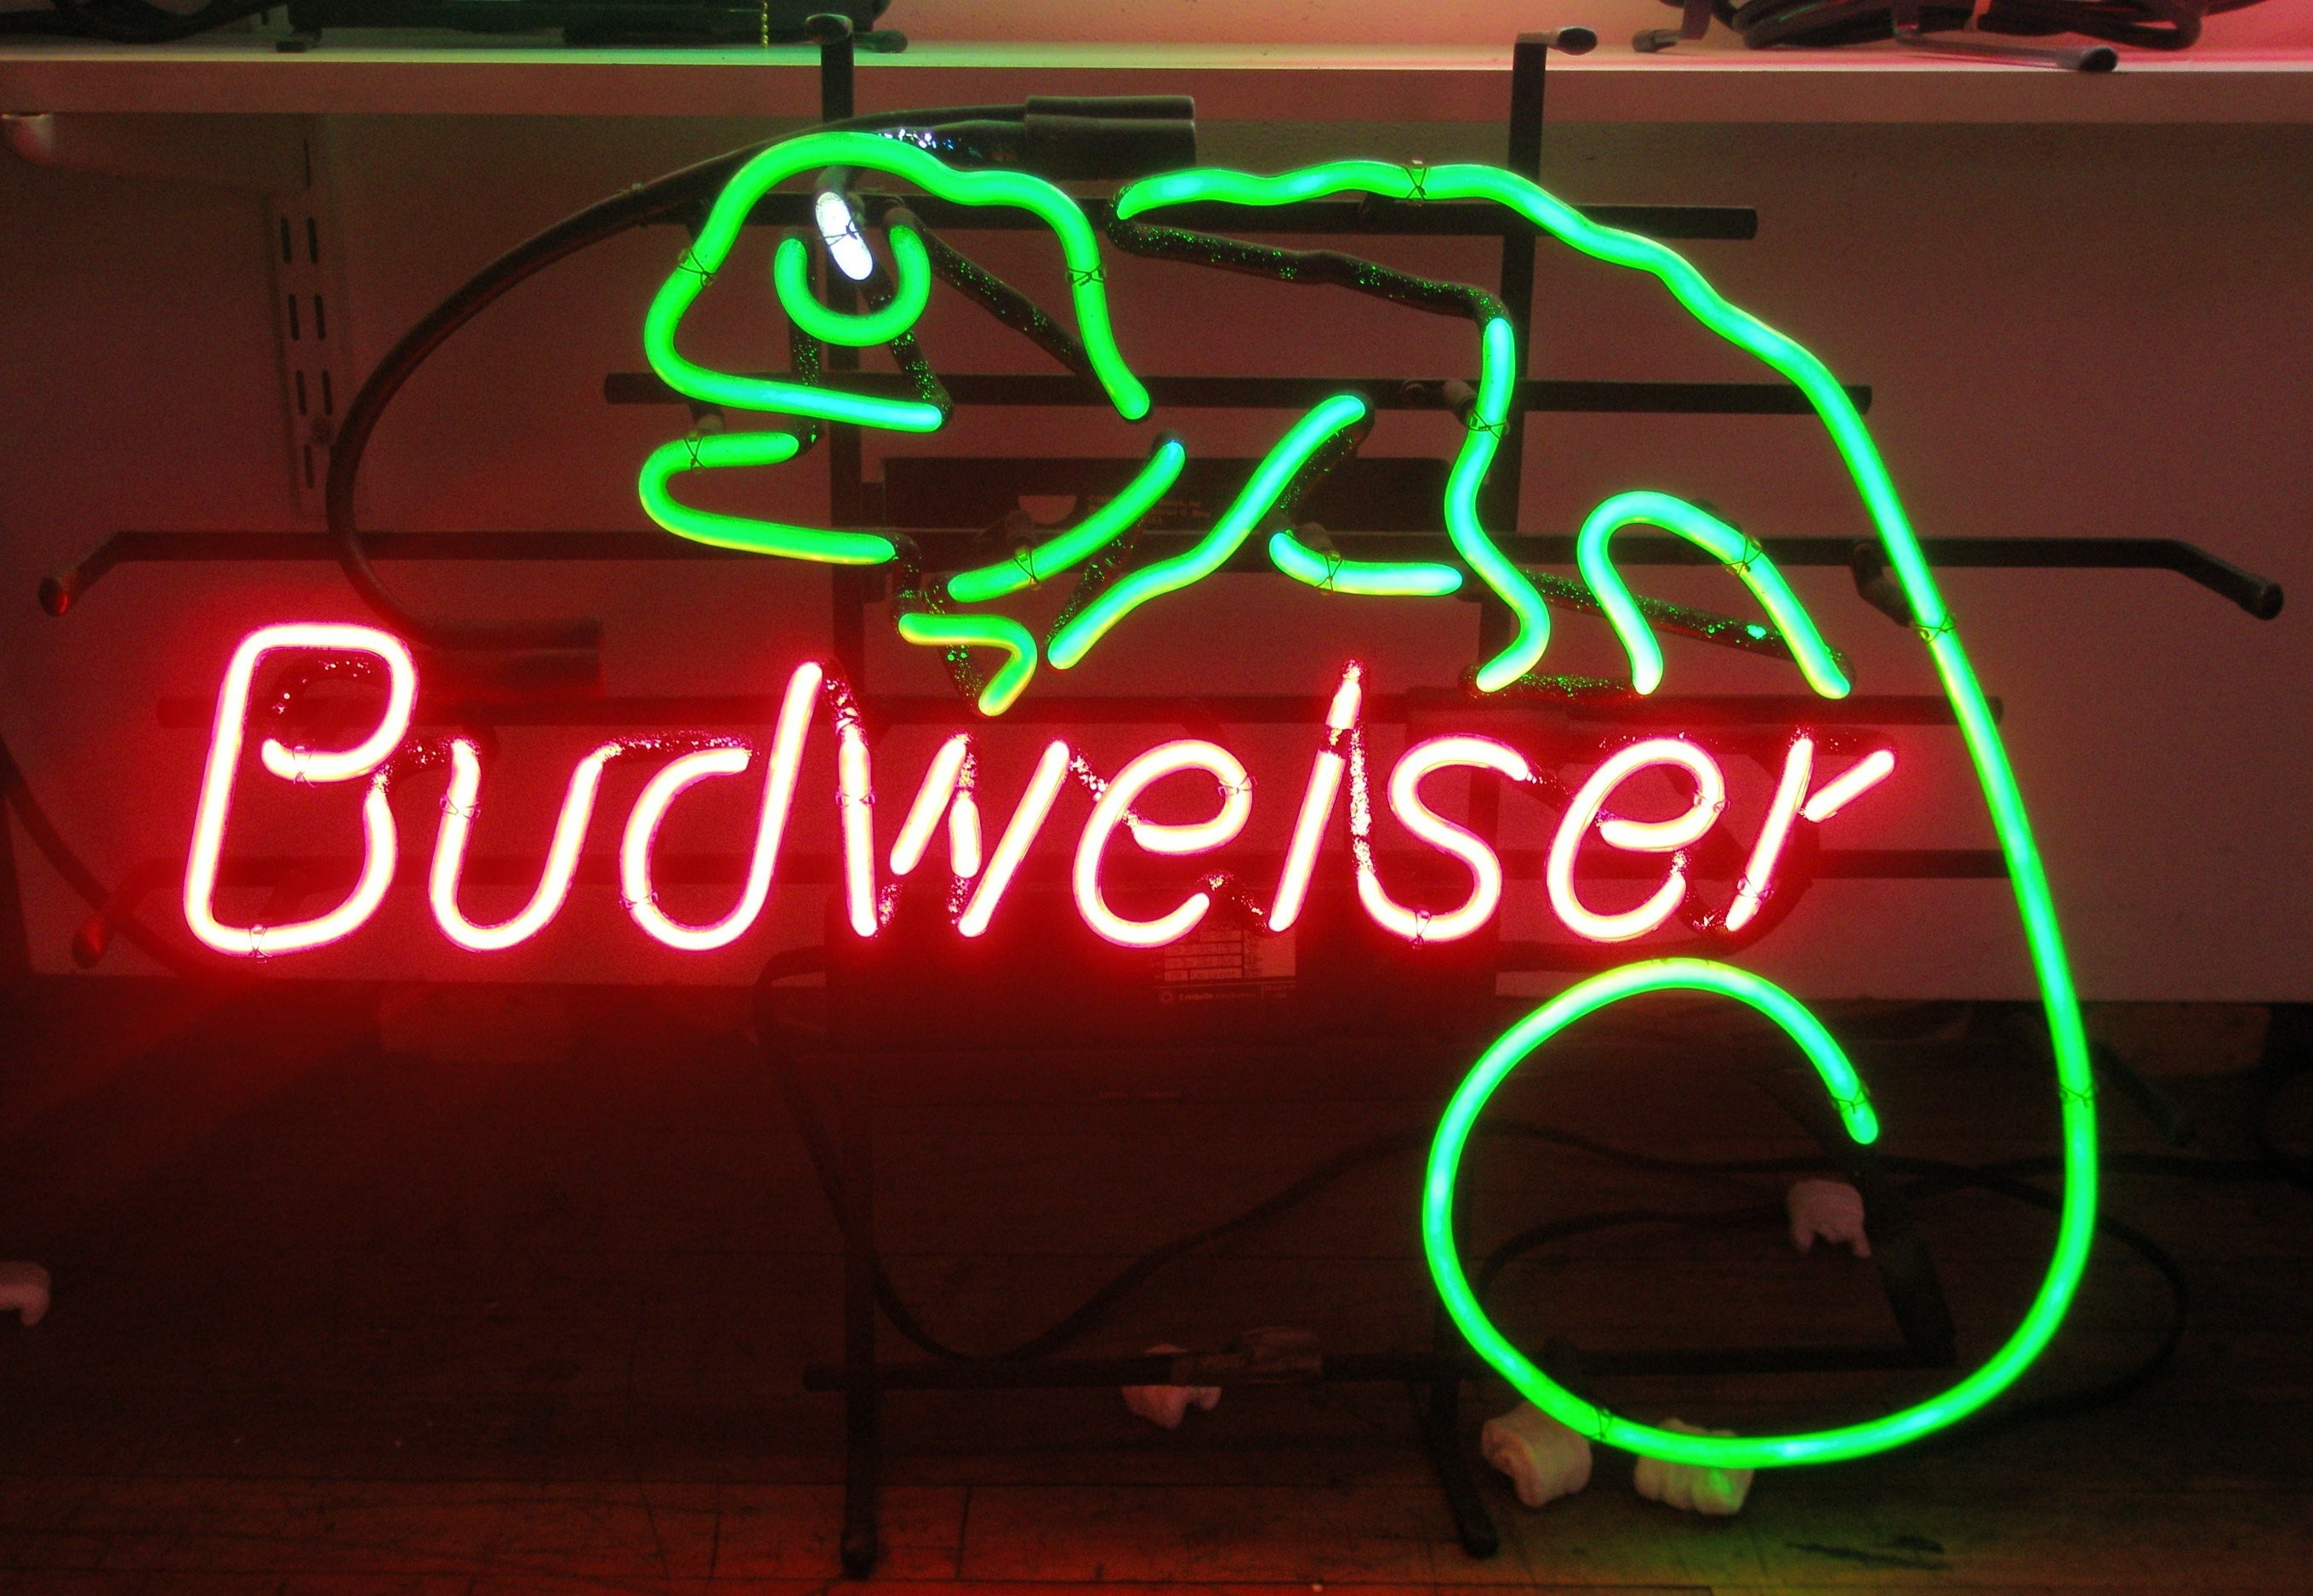 Beer alcohol drink poster neon sign wallpaper | | 334863 |  WallpaperUP